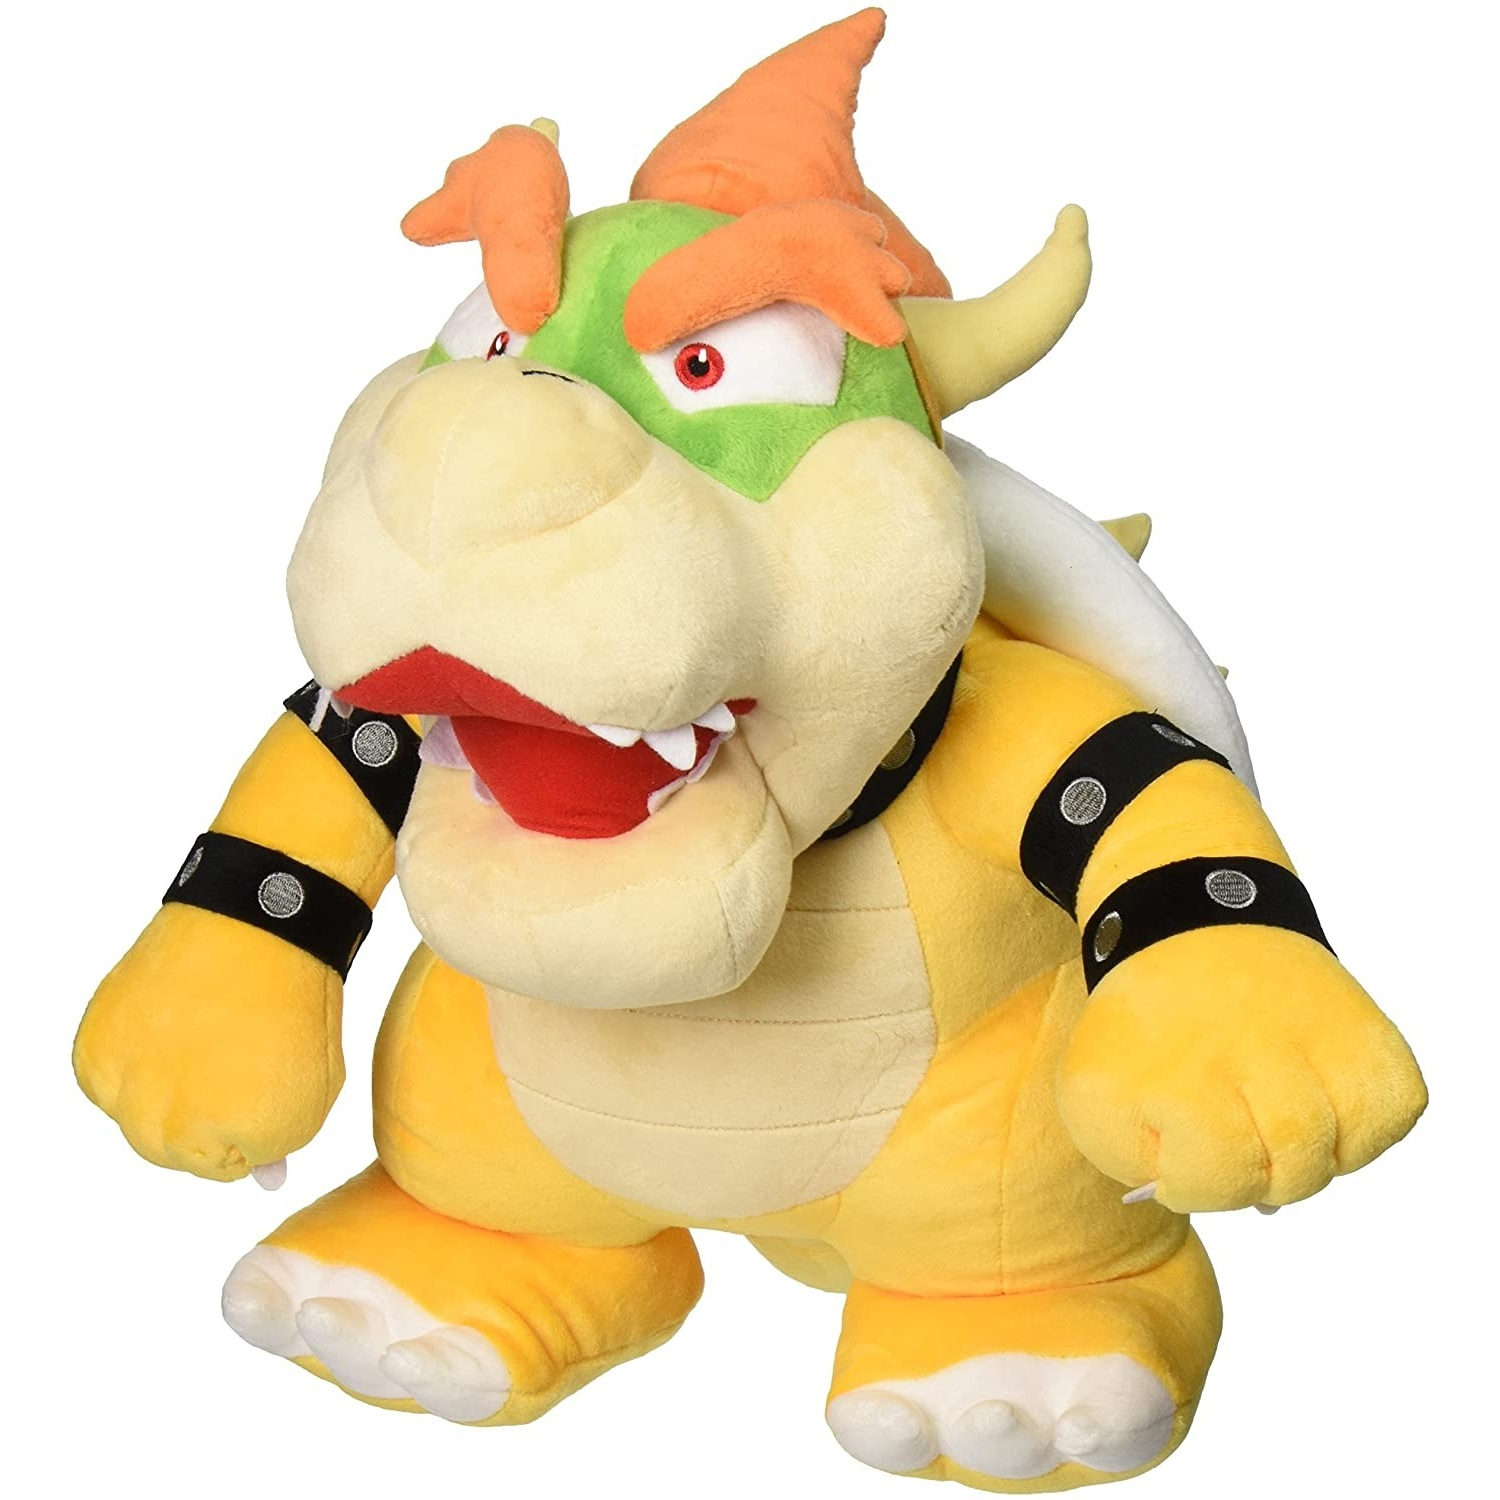 bowser-large-all-star-collection-plush (1)